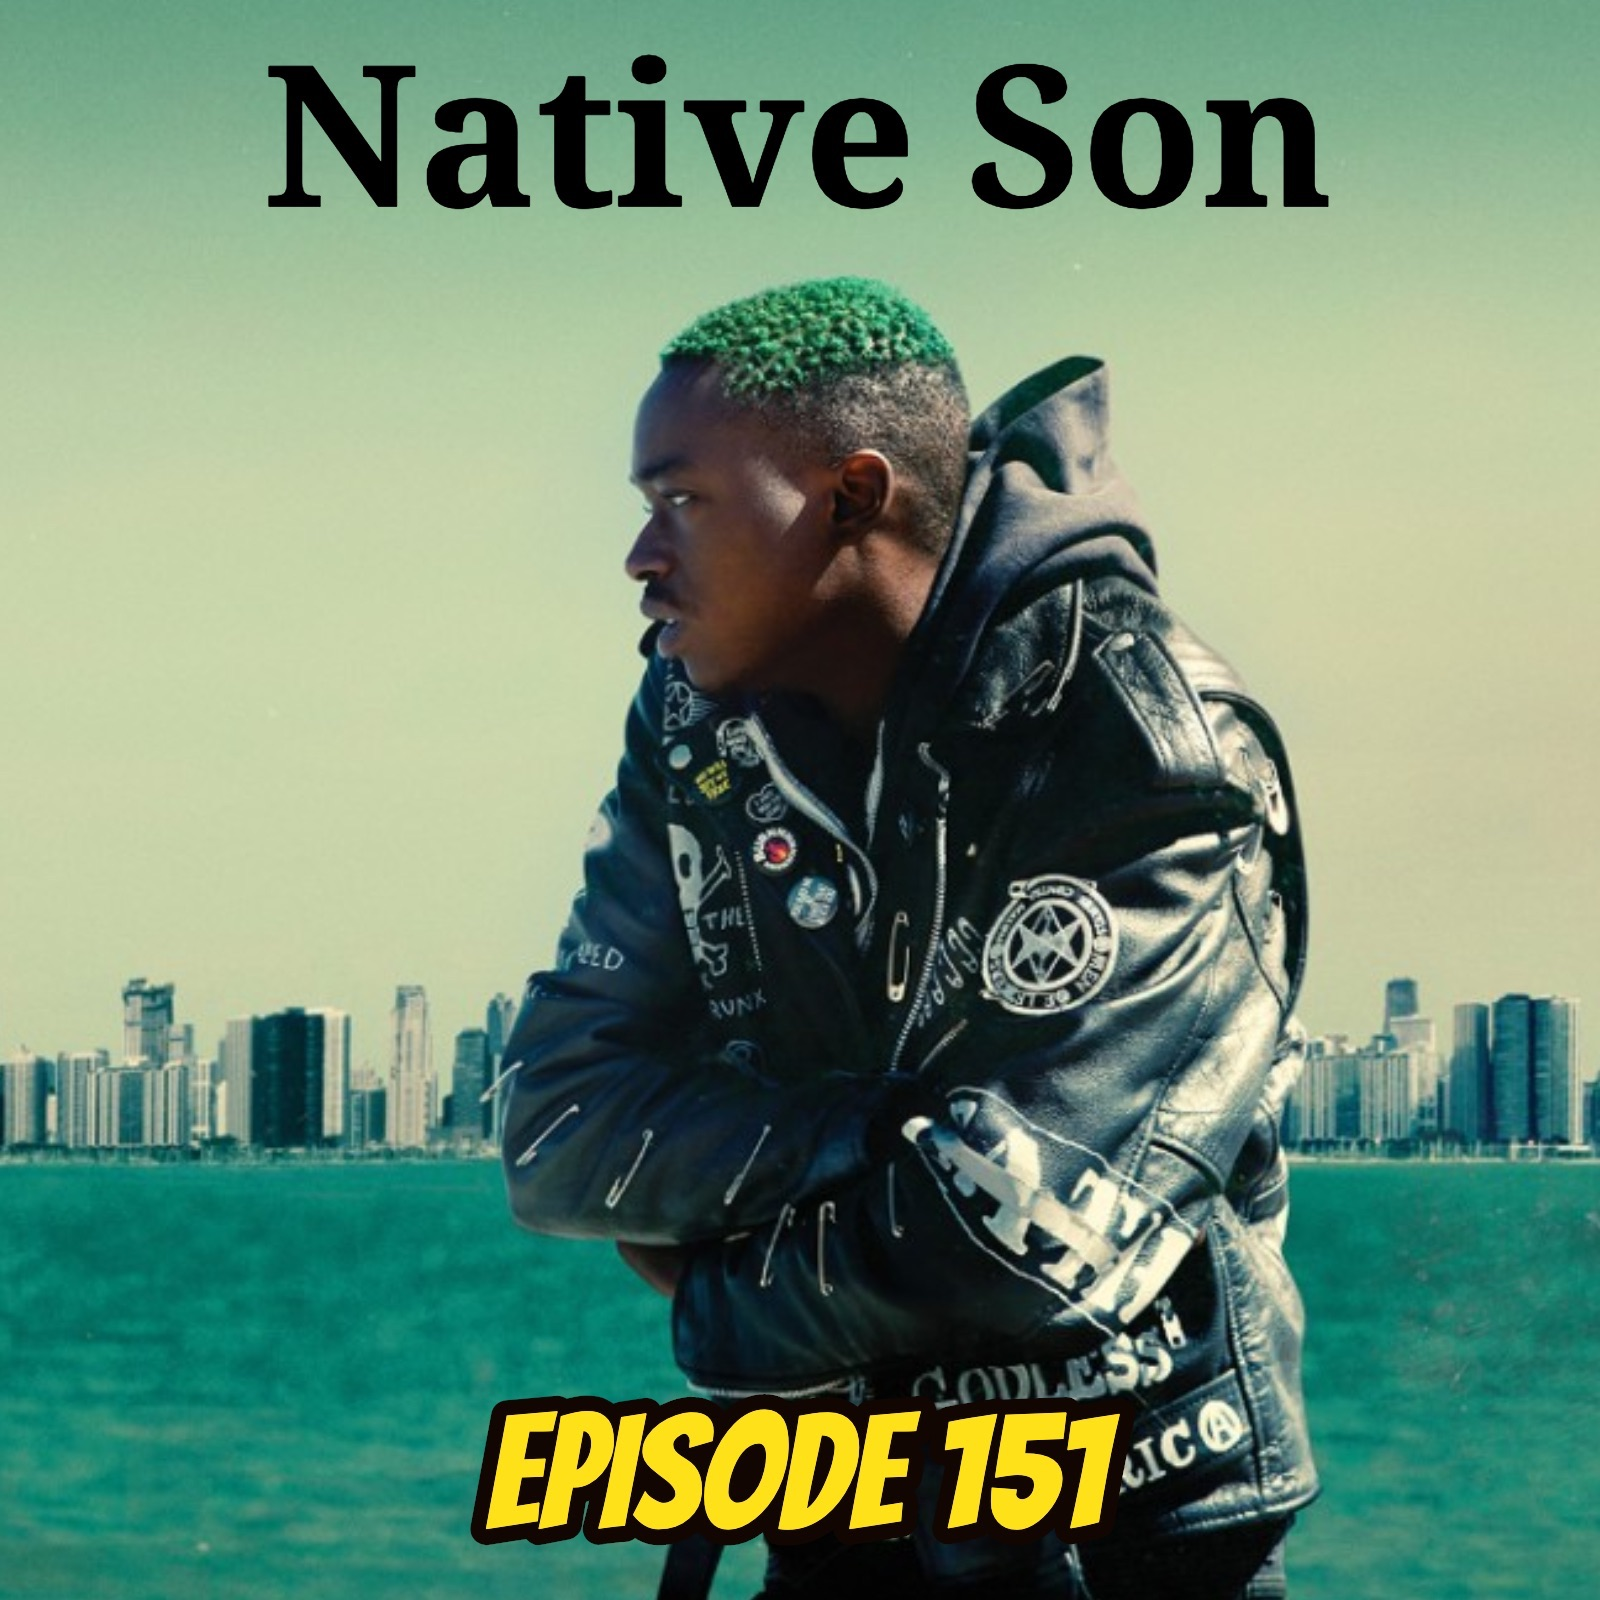 Native Son - Episode 151